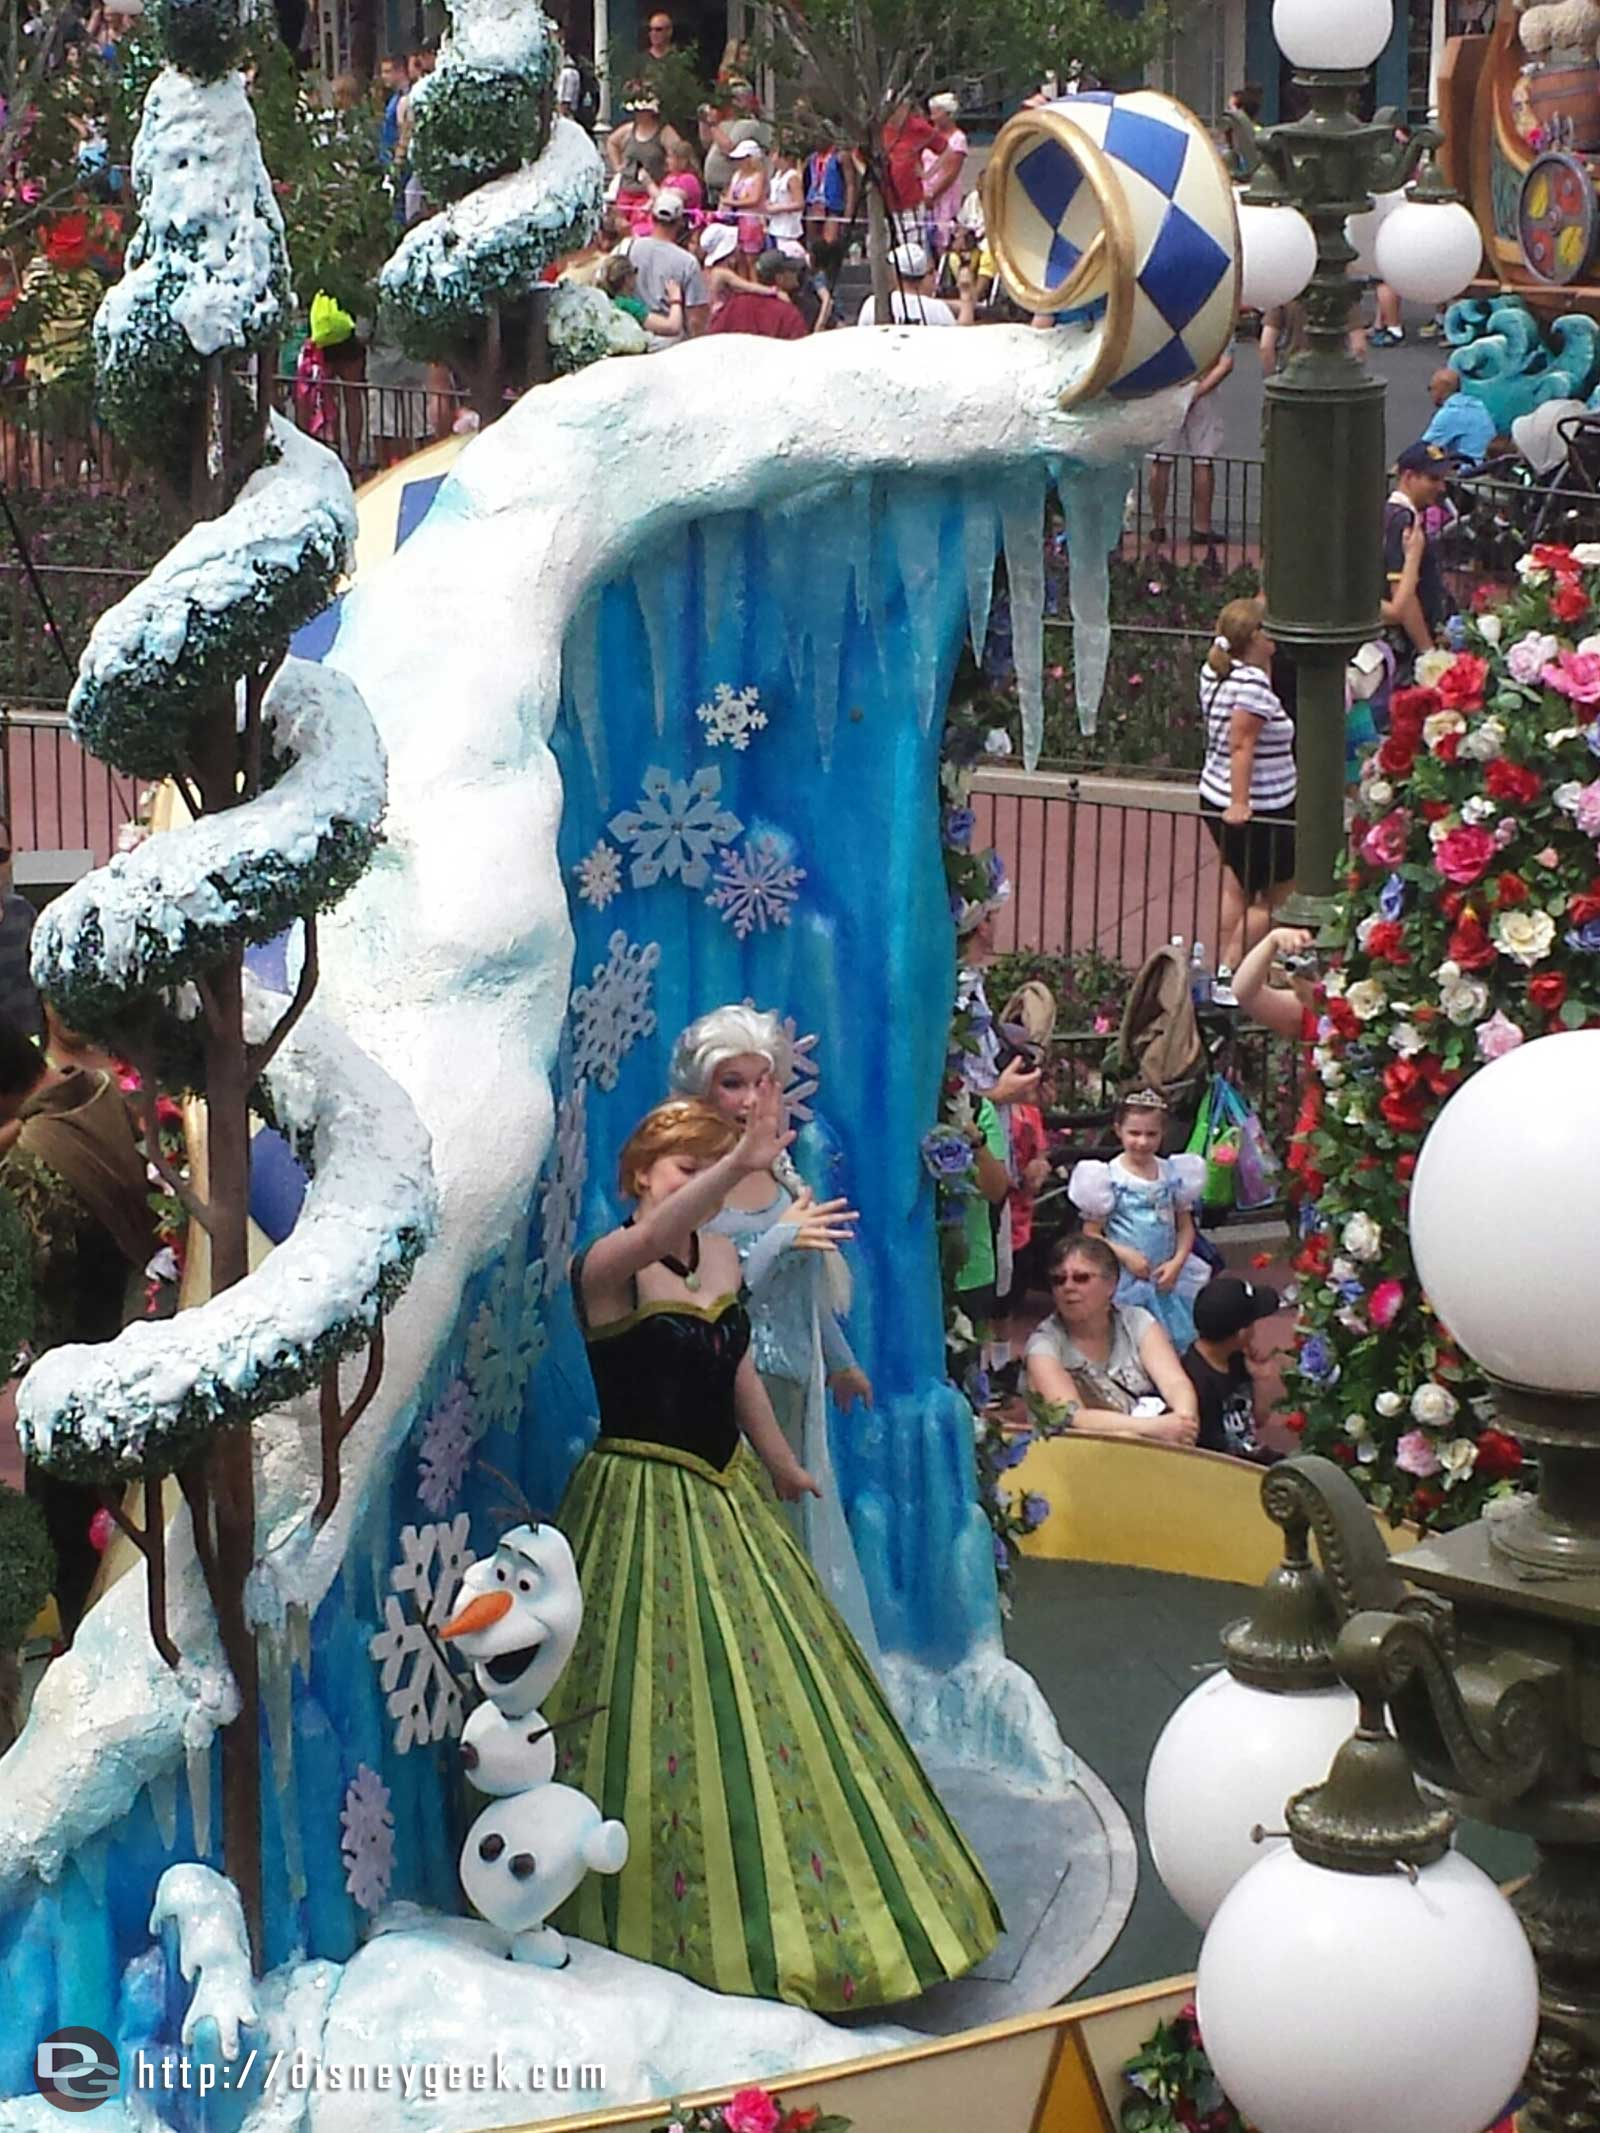 The Frozen sisters & Olaf sort of, better pics with the SLR – Festival of Fantasy parade #WDW Magic Kingdom